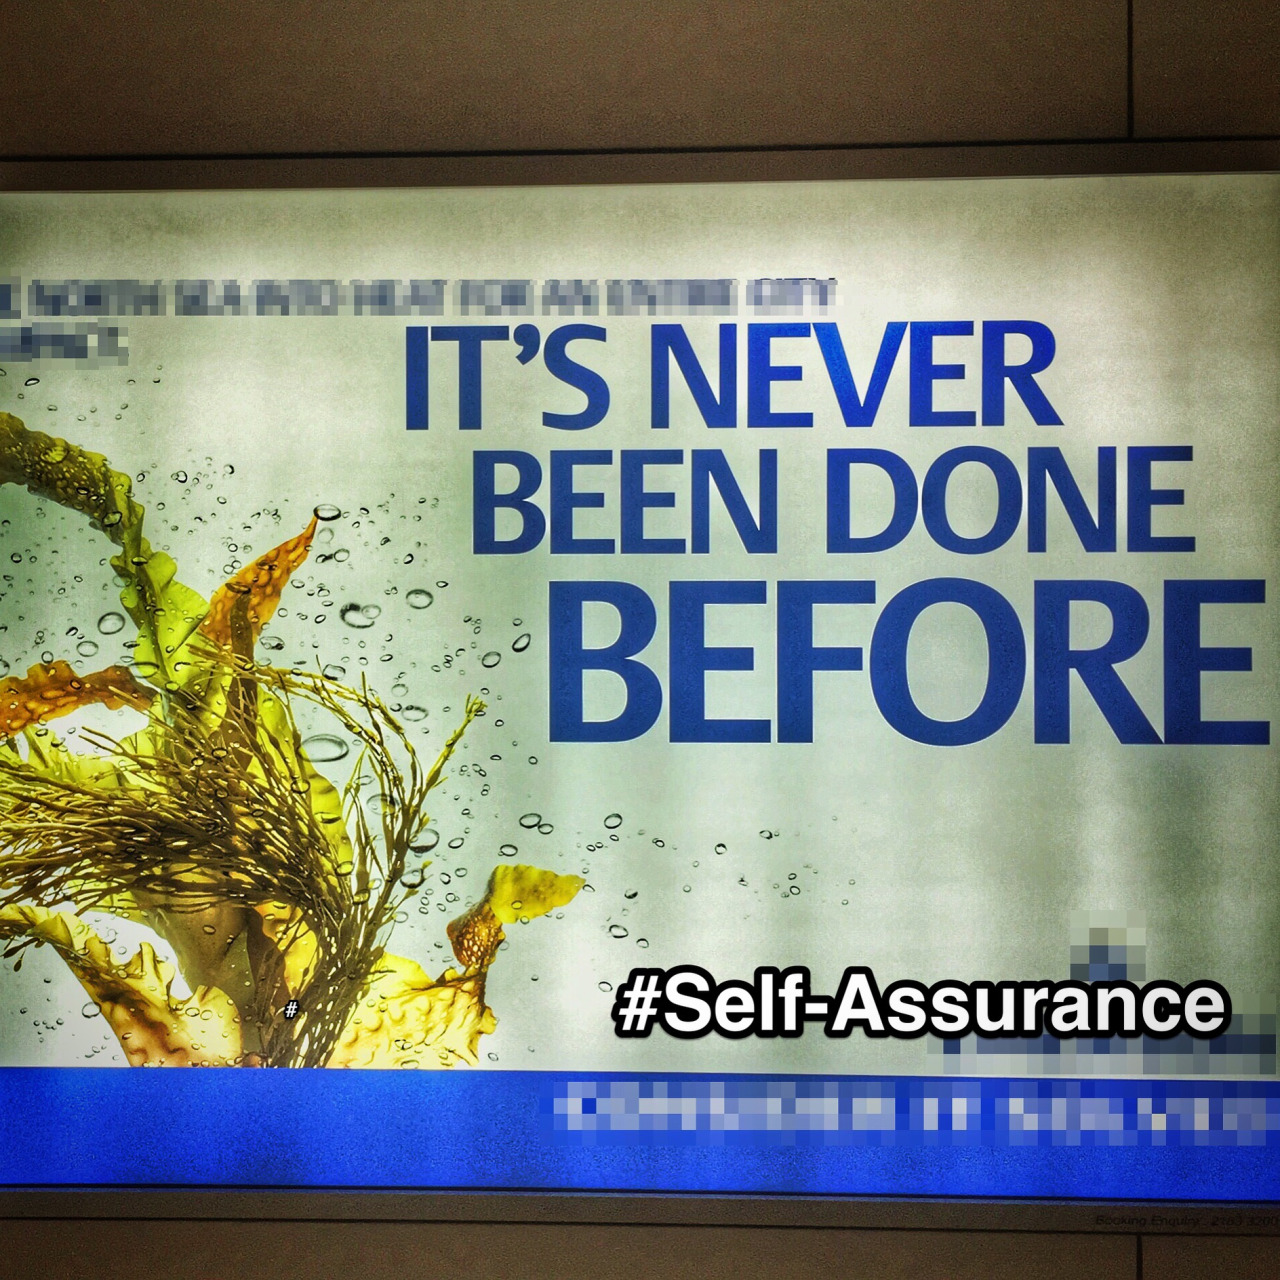 Saw this advertisement in #HongKong airport while coming back to #Singapore from a #StrengthsFinder workshop. Personally having #SelfAssurance as a #strength, I can relate. There is great #motivation when something has #NeverBeenDoneBefore as taking on #risk engages us.   #StrengthsSchool #strengthsquest